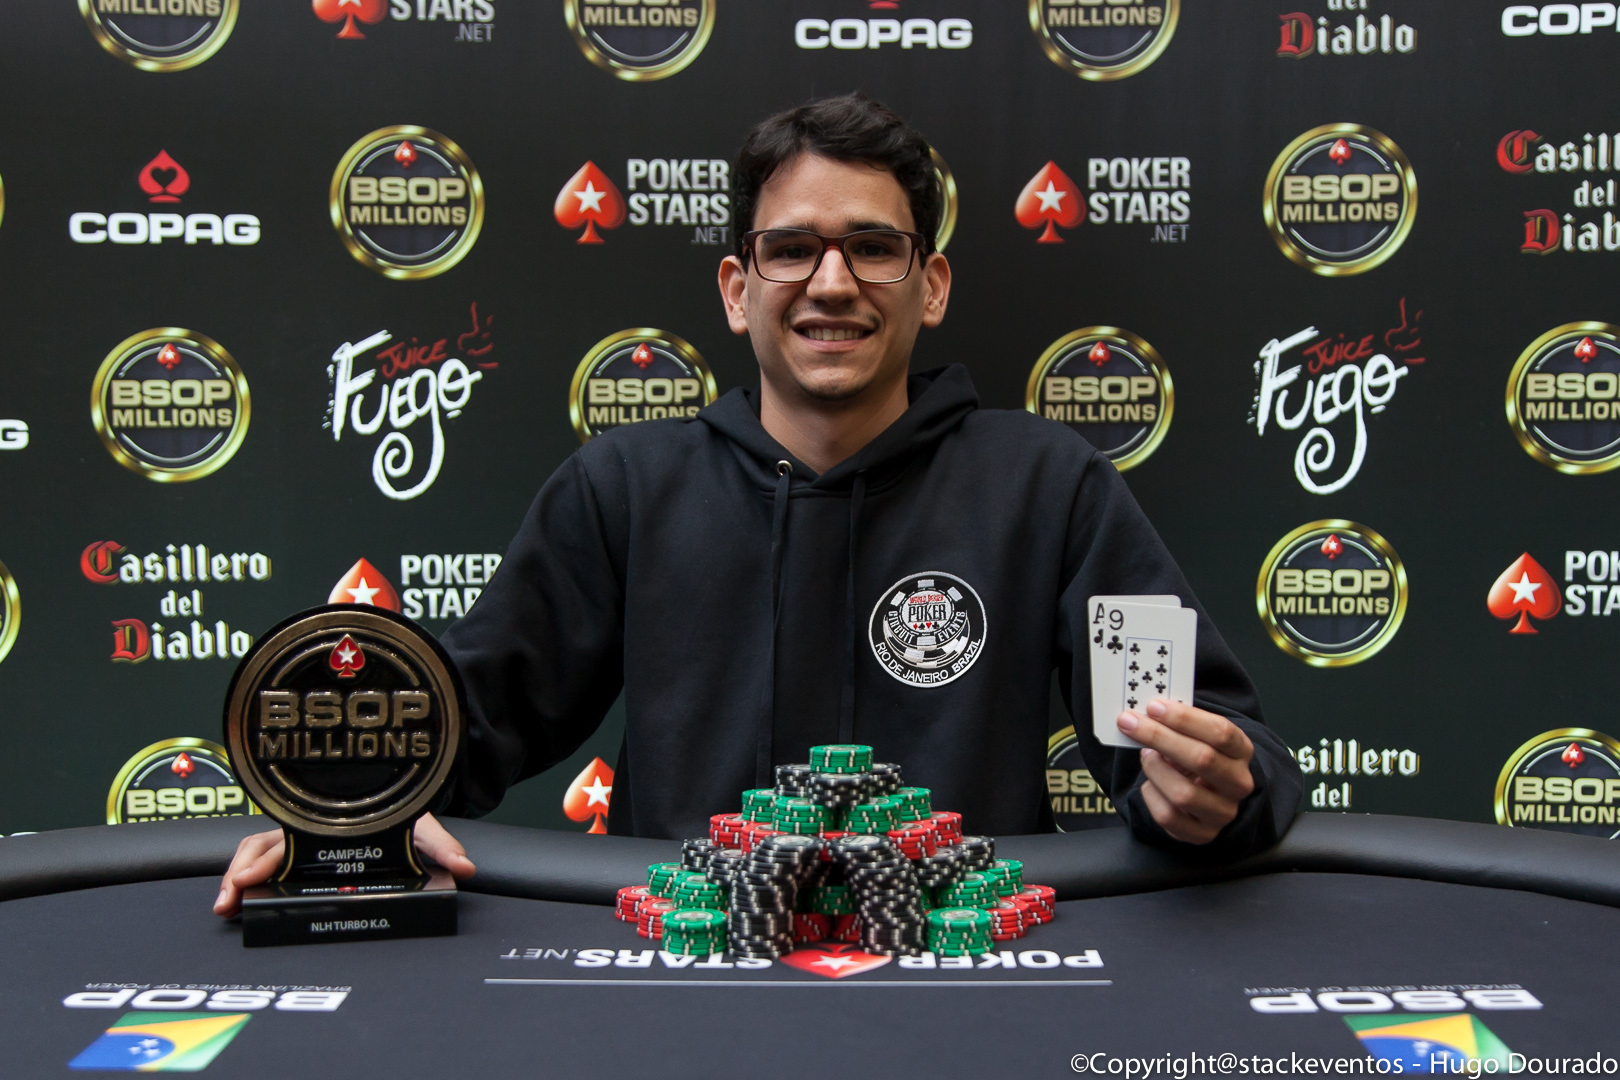 Leandro de Oliveira campeão do Turbo Knockout do BSOP Millions